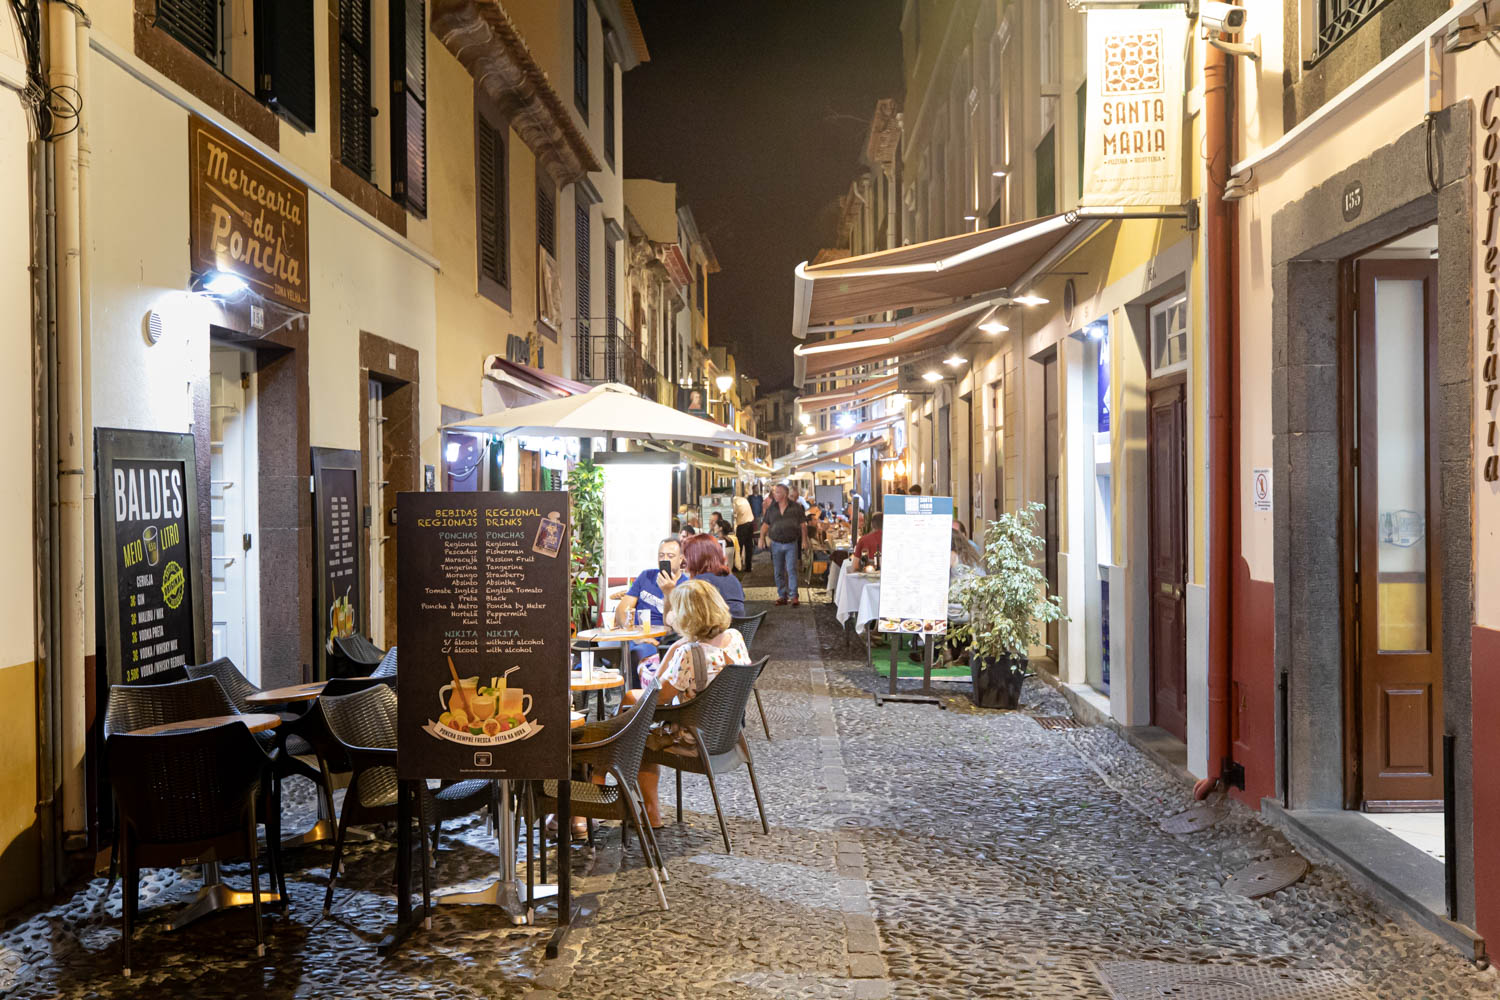 Bar and restaurant street in old town Funchal